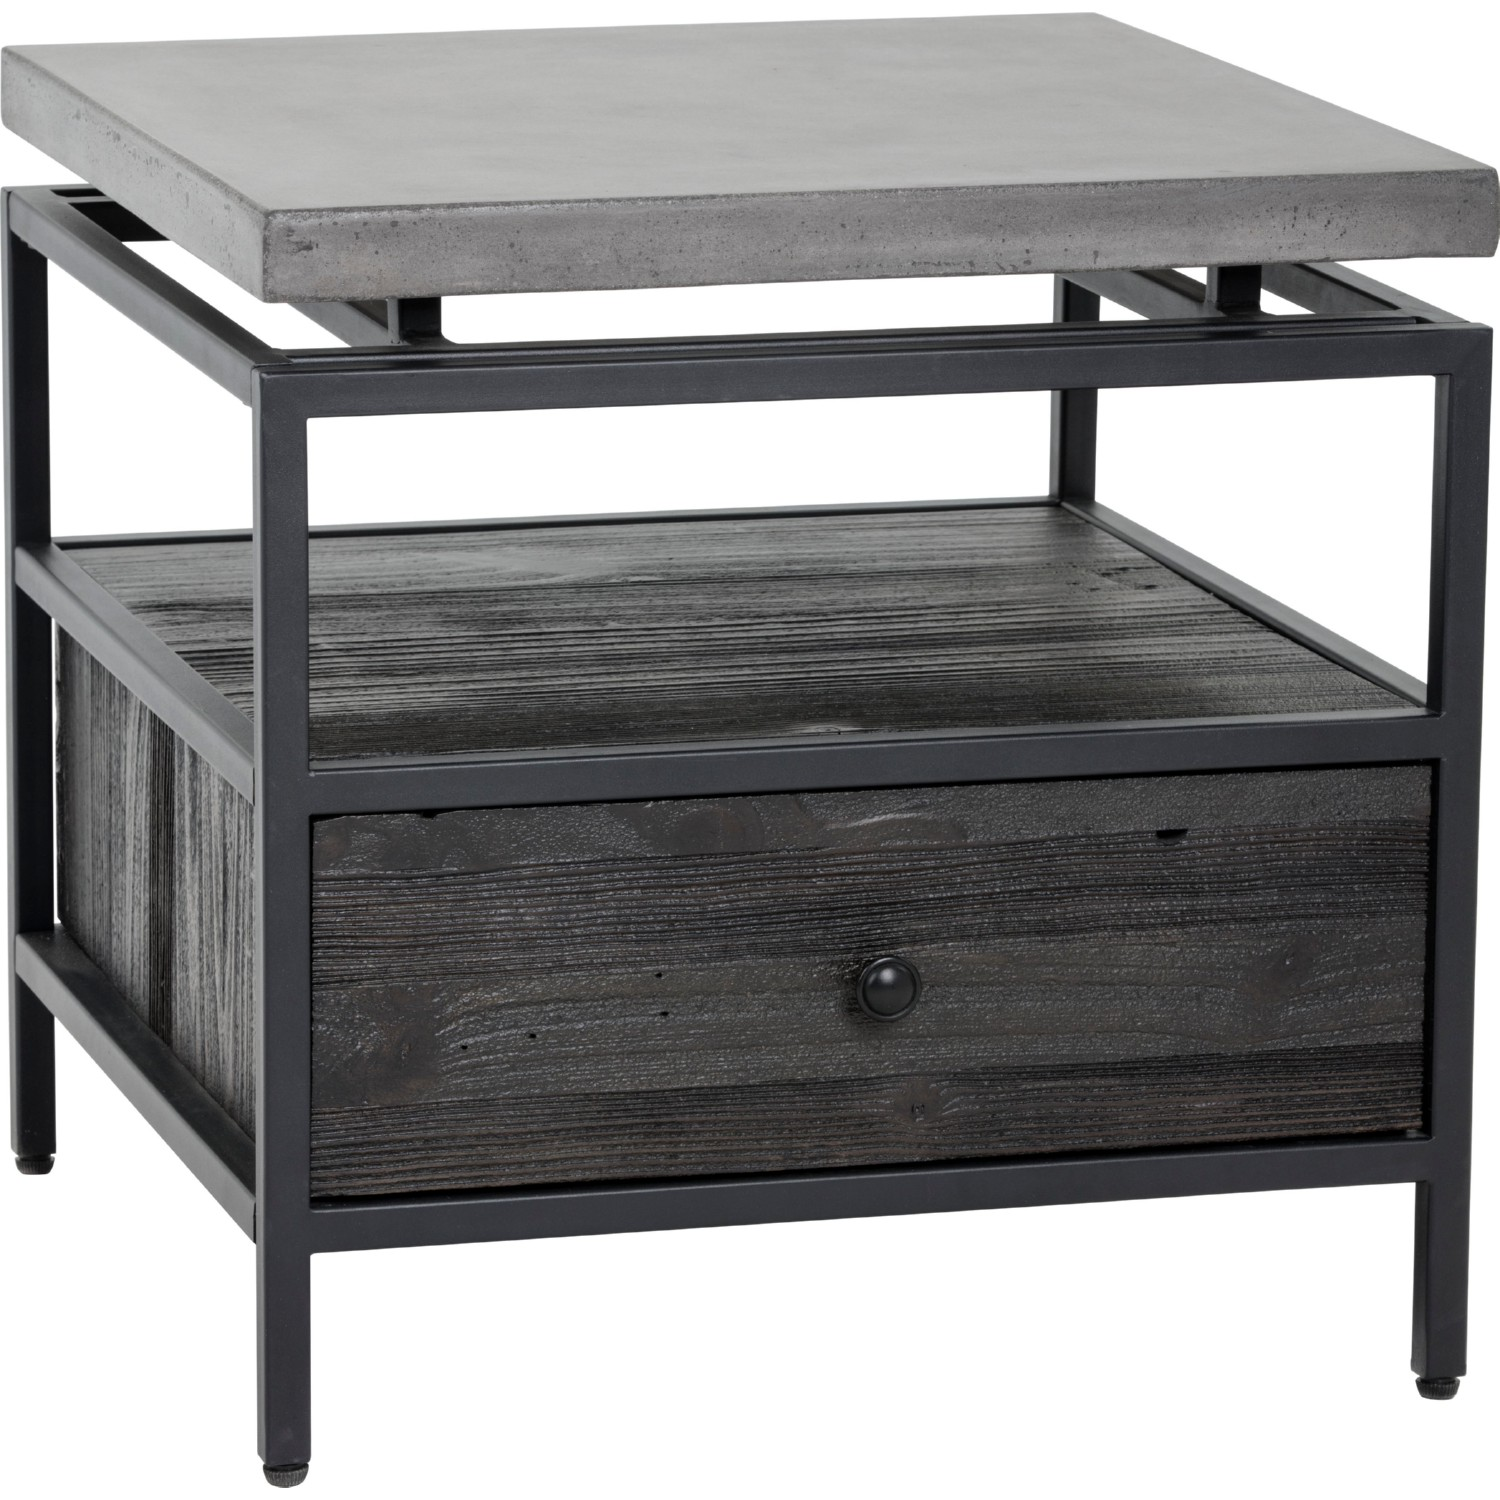 Captivating Norwood End Table In Coffee Bean Wood W/ Concrete Top